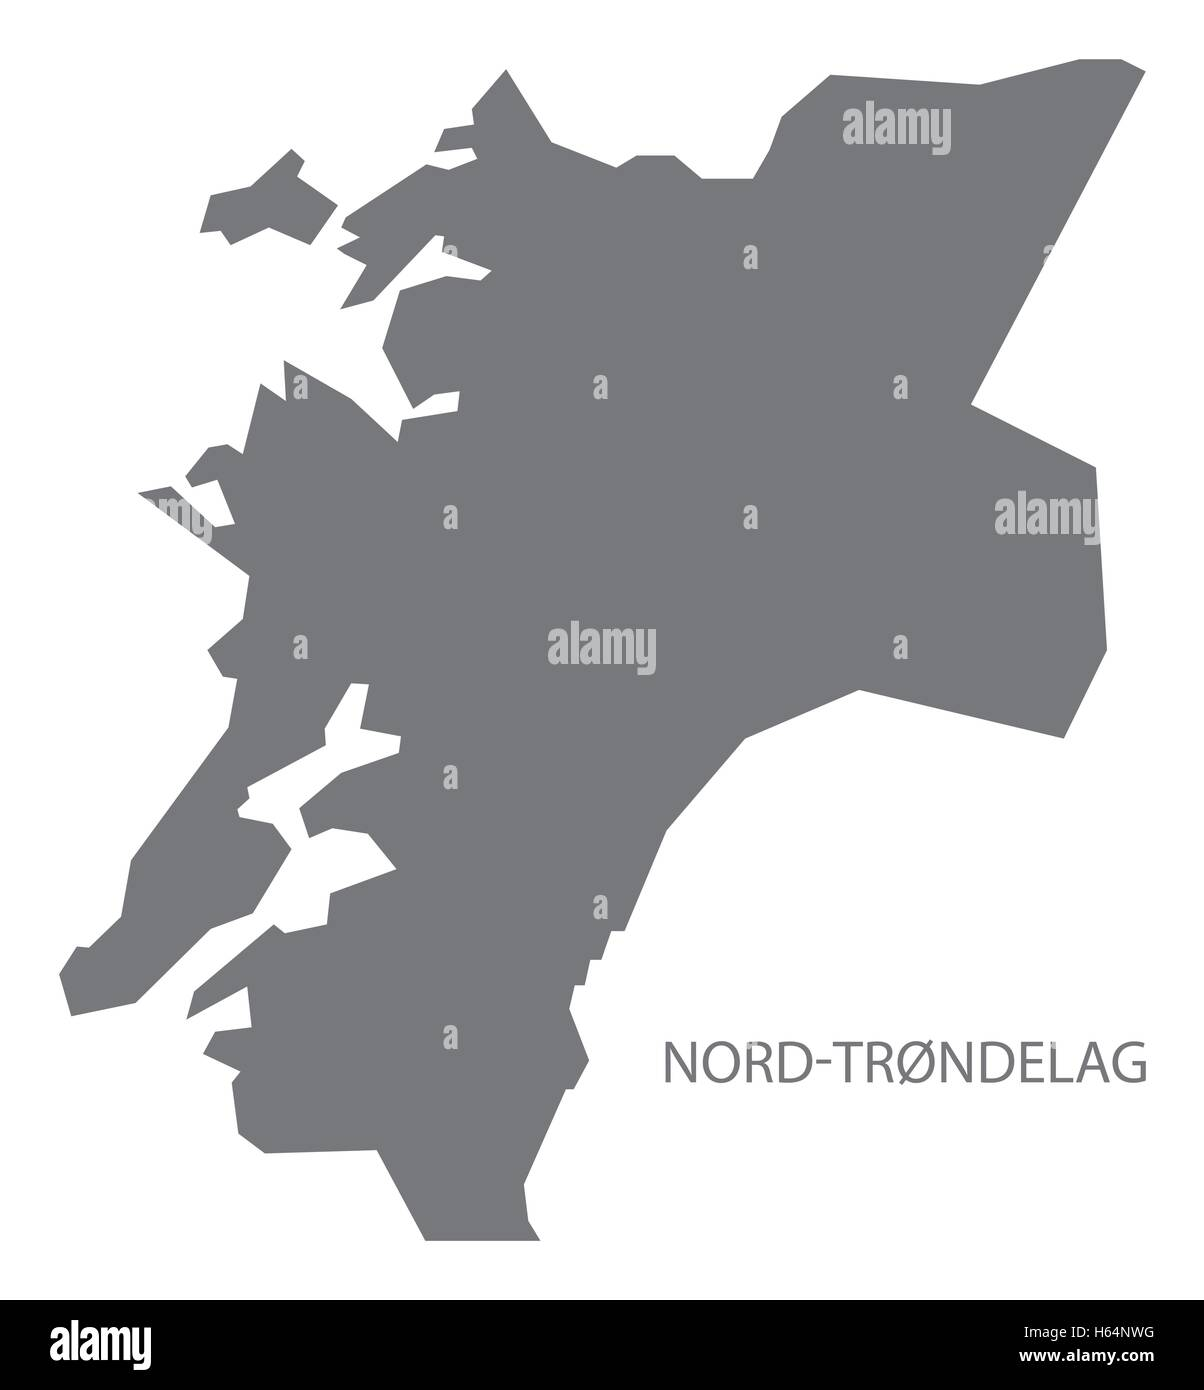 Nord-Trondelag Norway Map grey - Stock Image